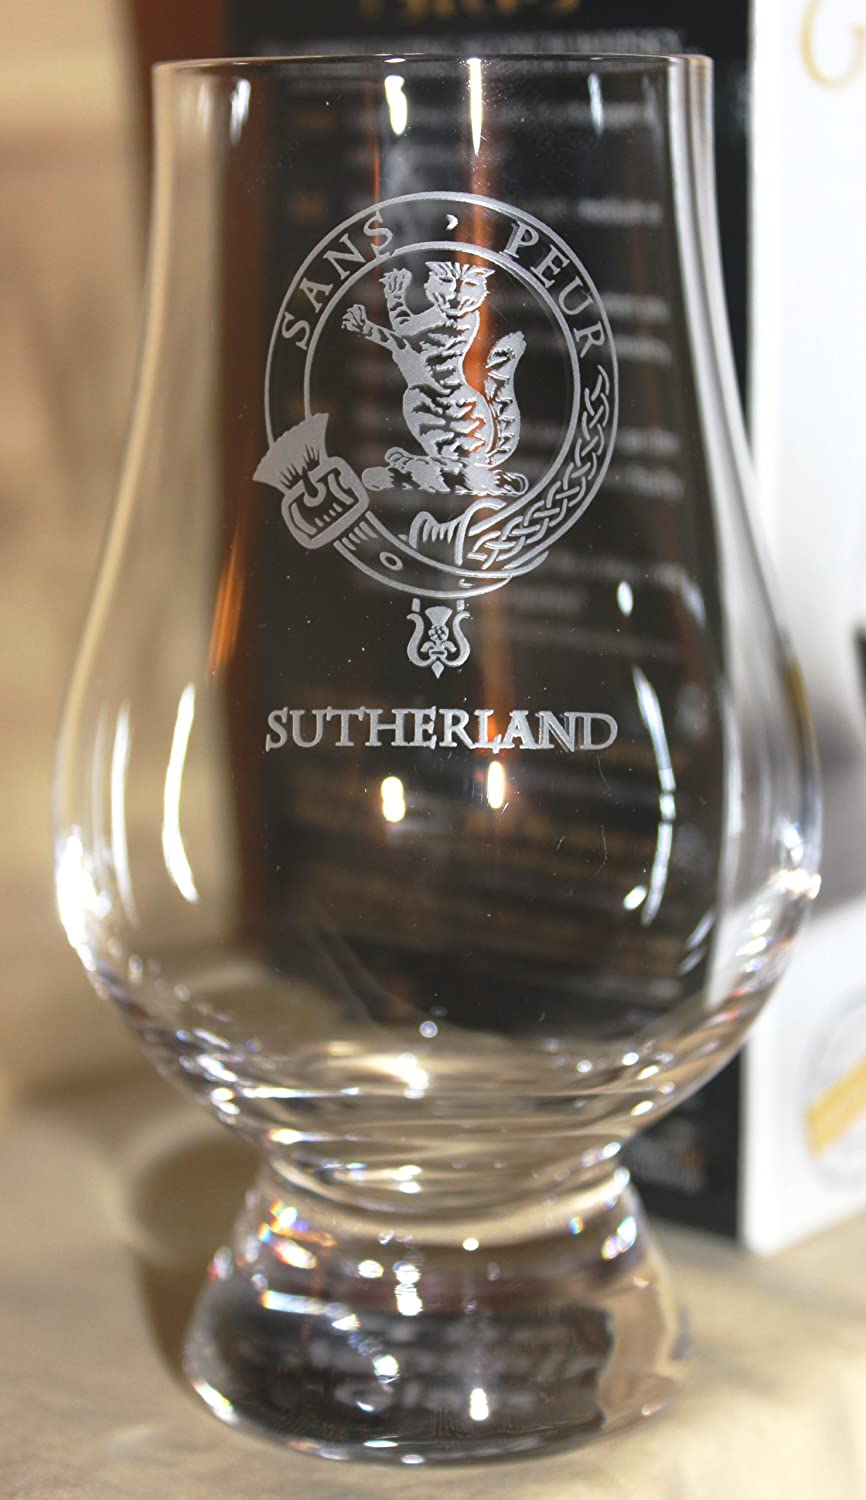 CLAN SUTHERLAND GLENCAIRN SINGLE MALT SCOTCH WHISKY TASTING GLASS